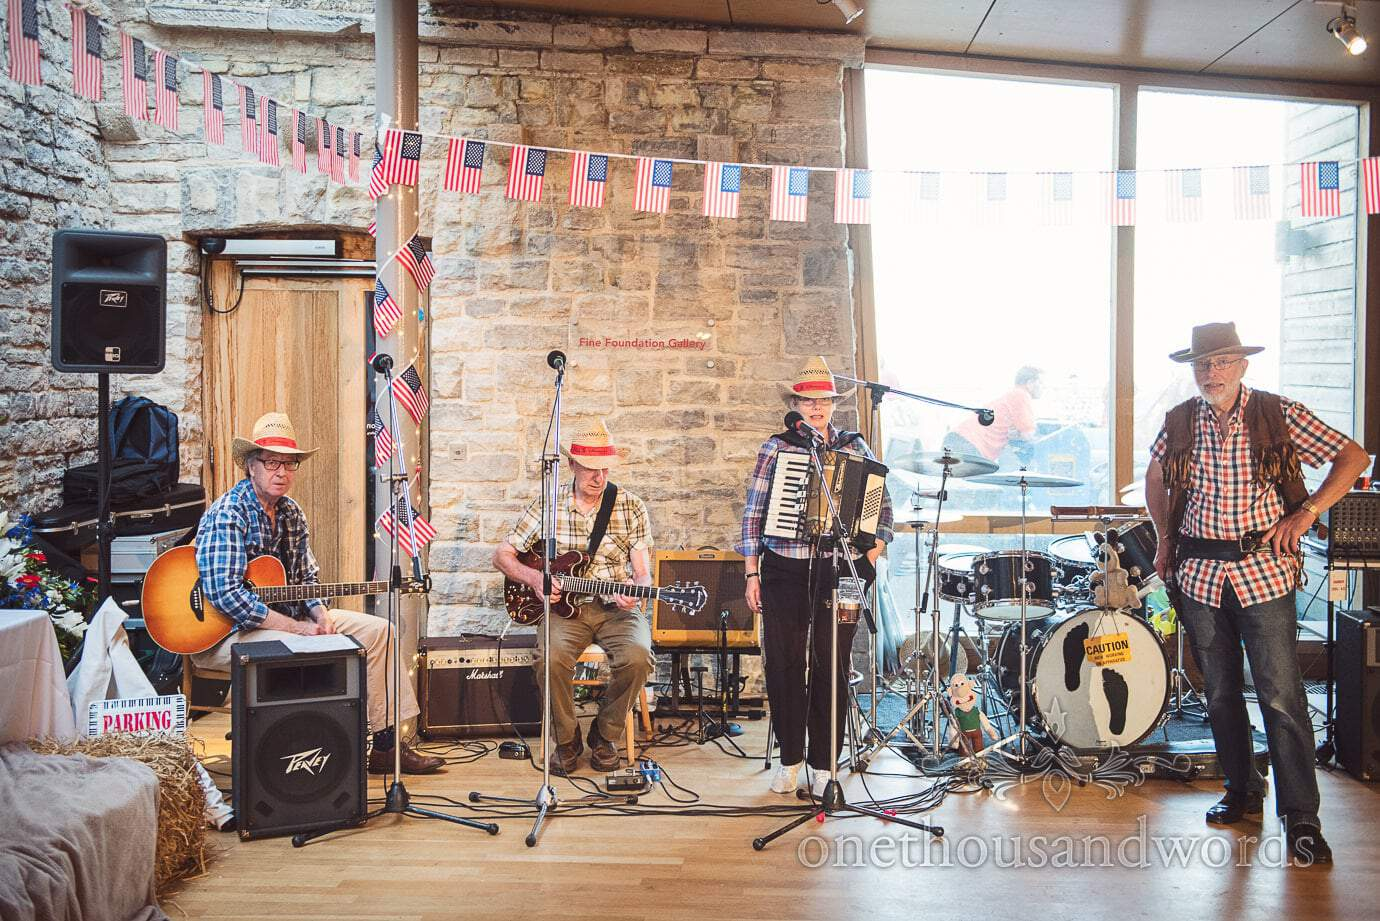 Wedding barn dance band in cowboy outfits with American flags at Durlston Castle wedding